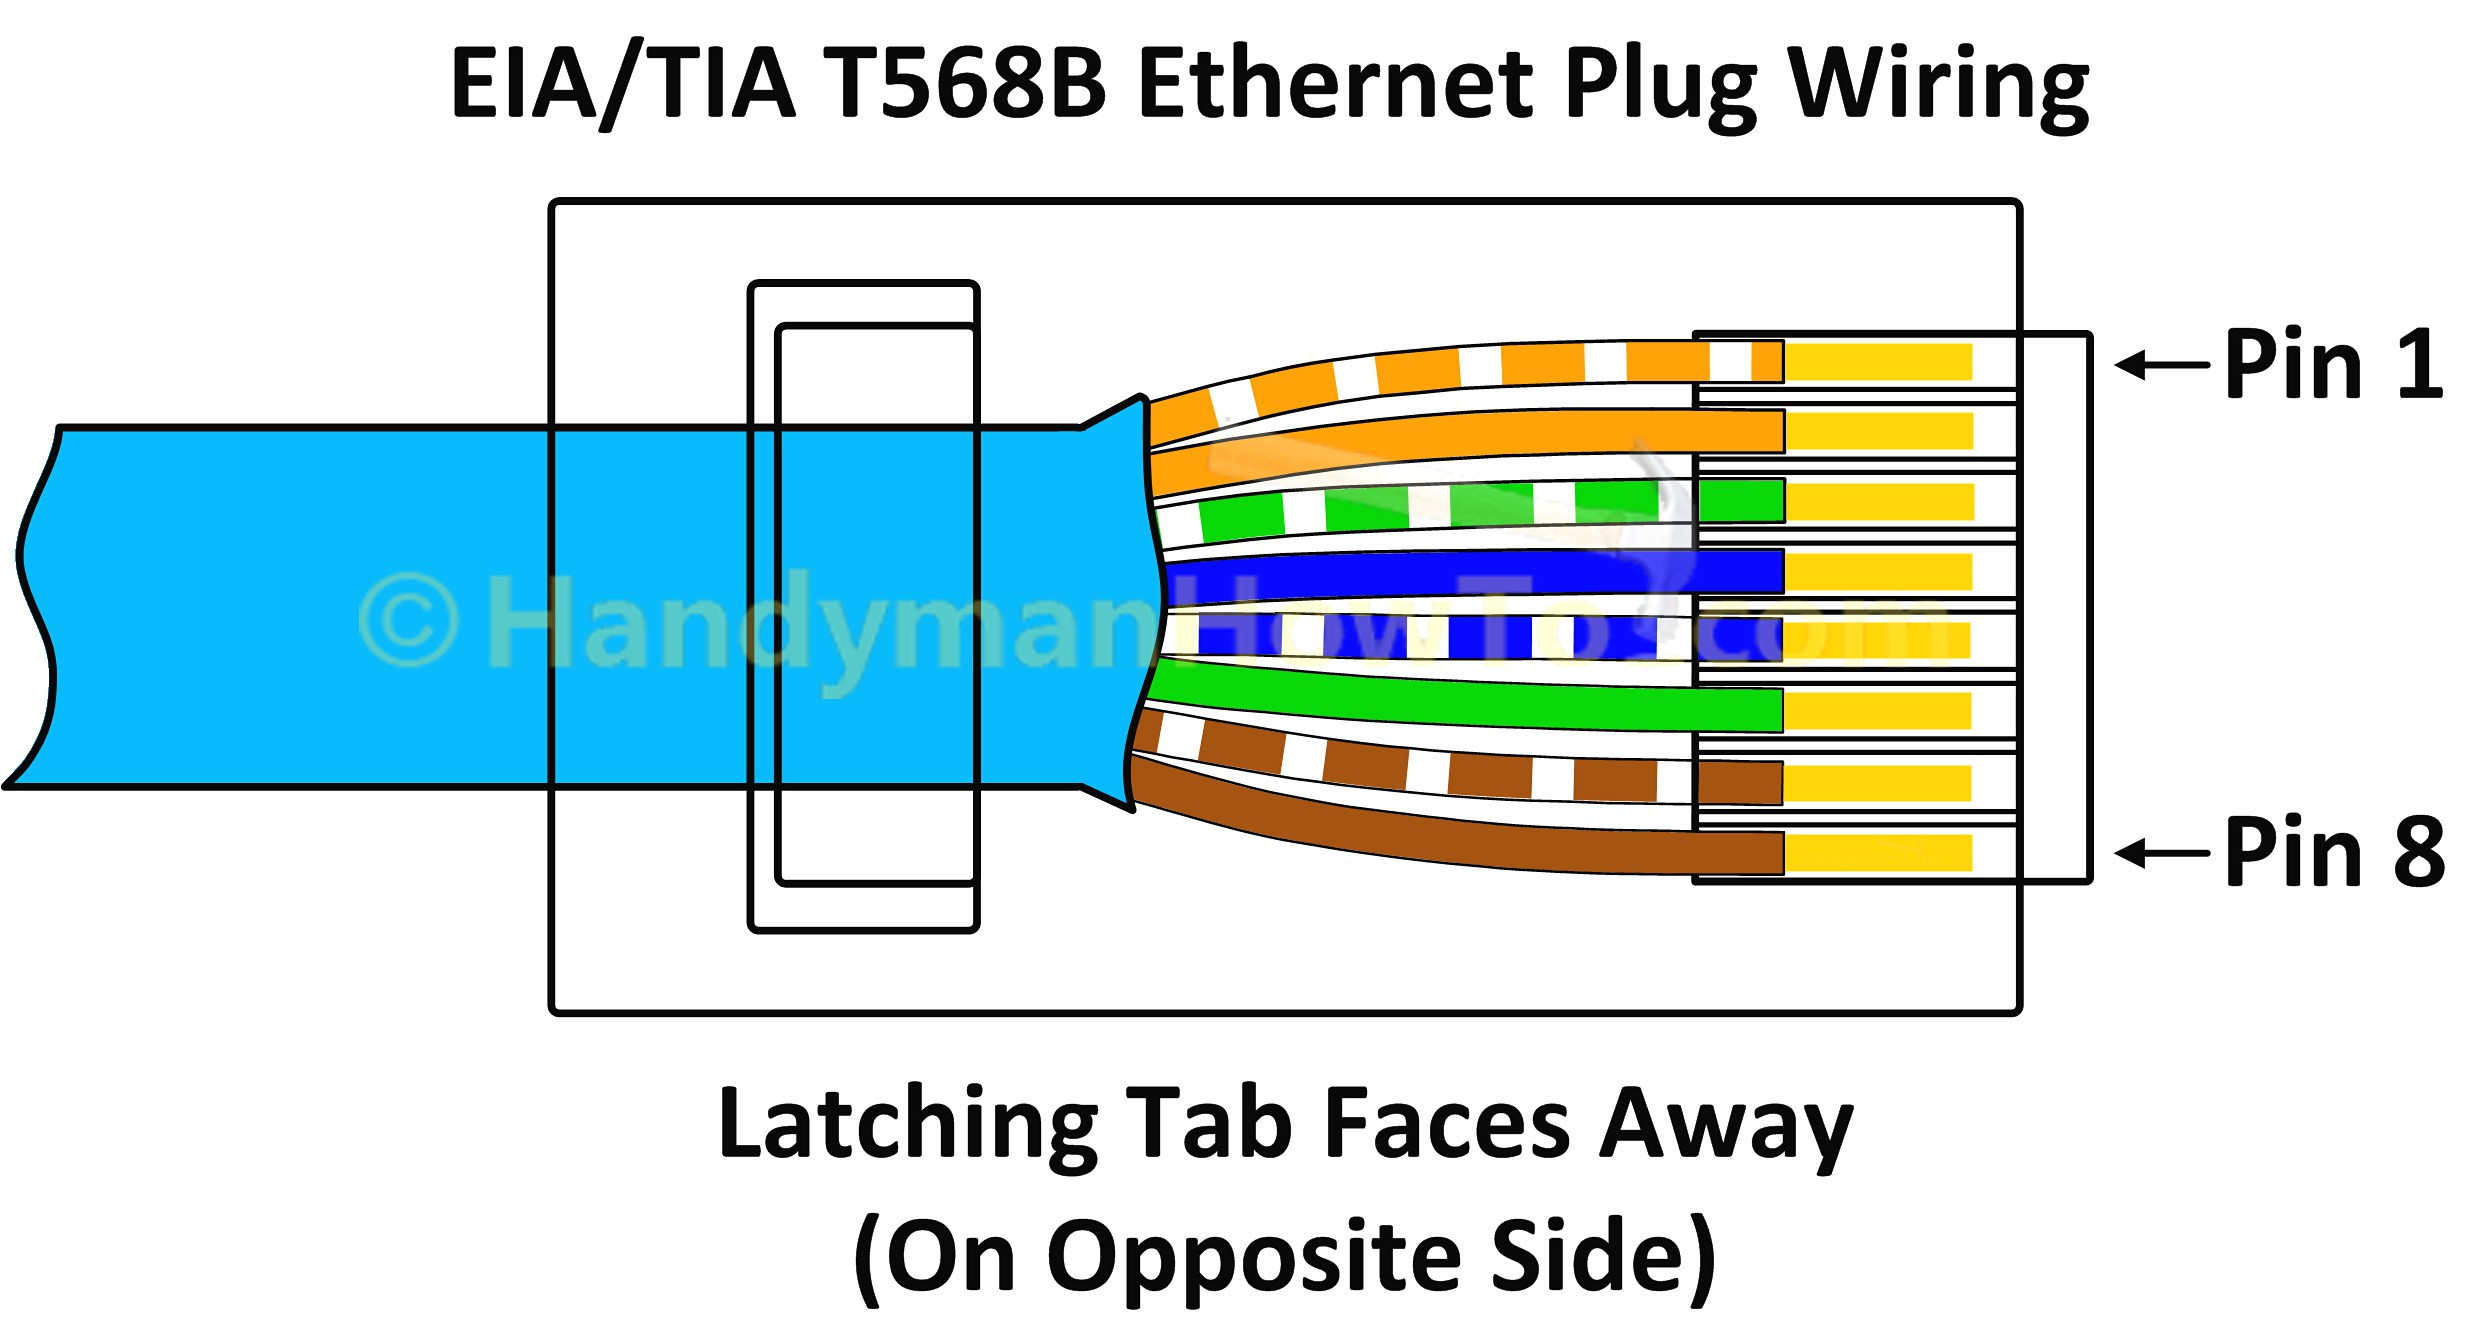 cat6 socket wiring diagram Collection-Rj45 Wall socket Wiring Diagram Australia Refrence Cat6 Wall Plate Wiring Diagram Australia New Elegant Cat5e 3-c